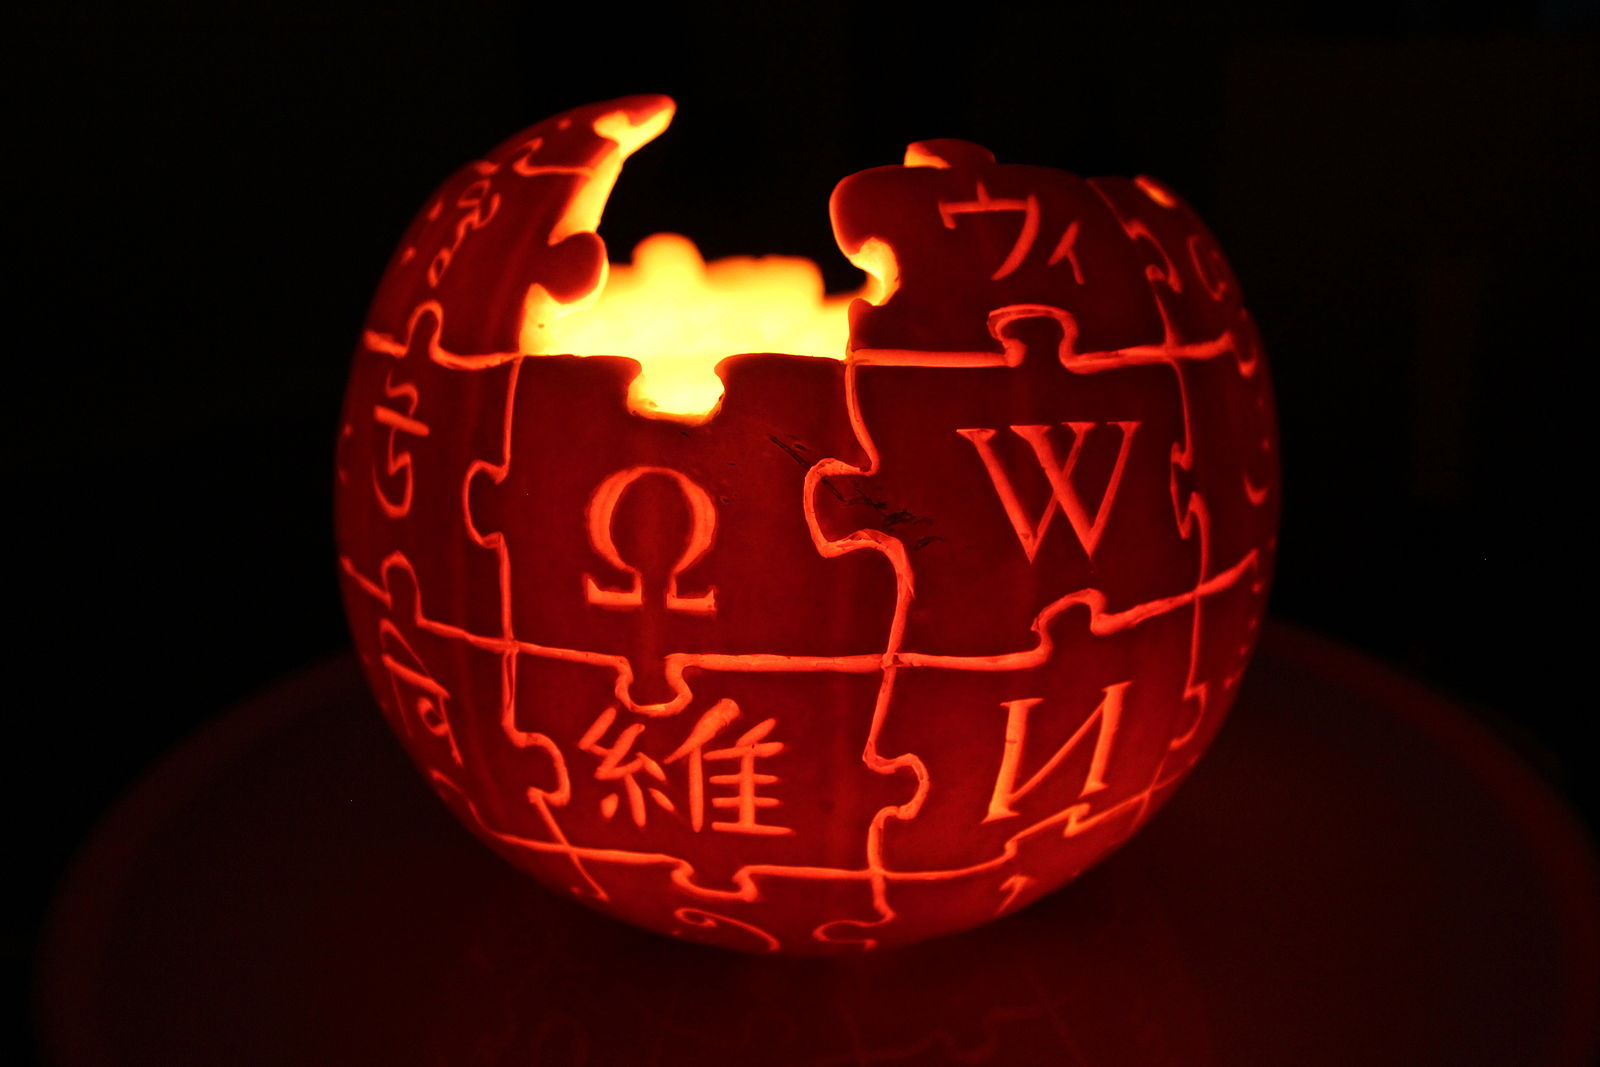 Pumpkipedia - Wikipedia in carved pumpkin style.